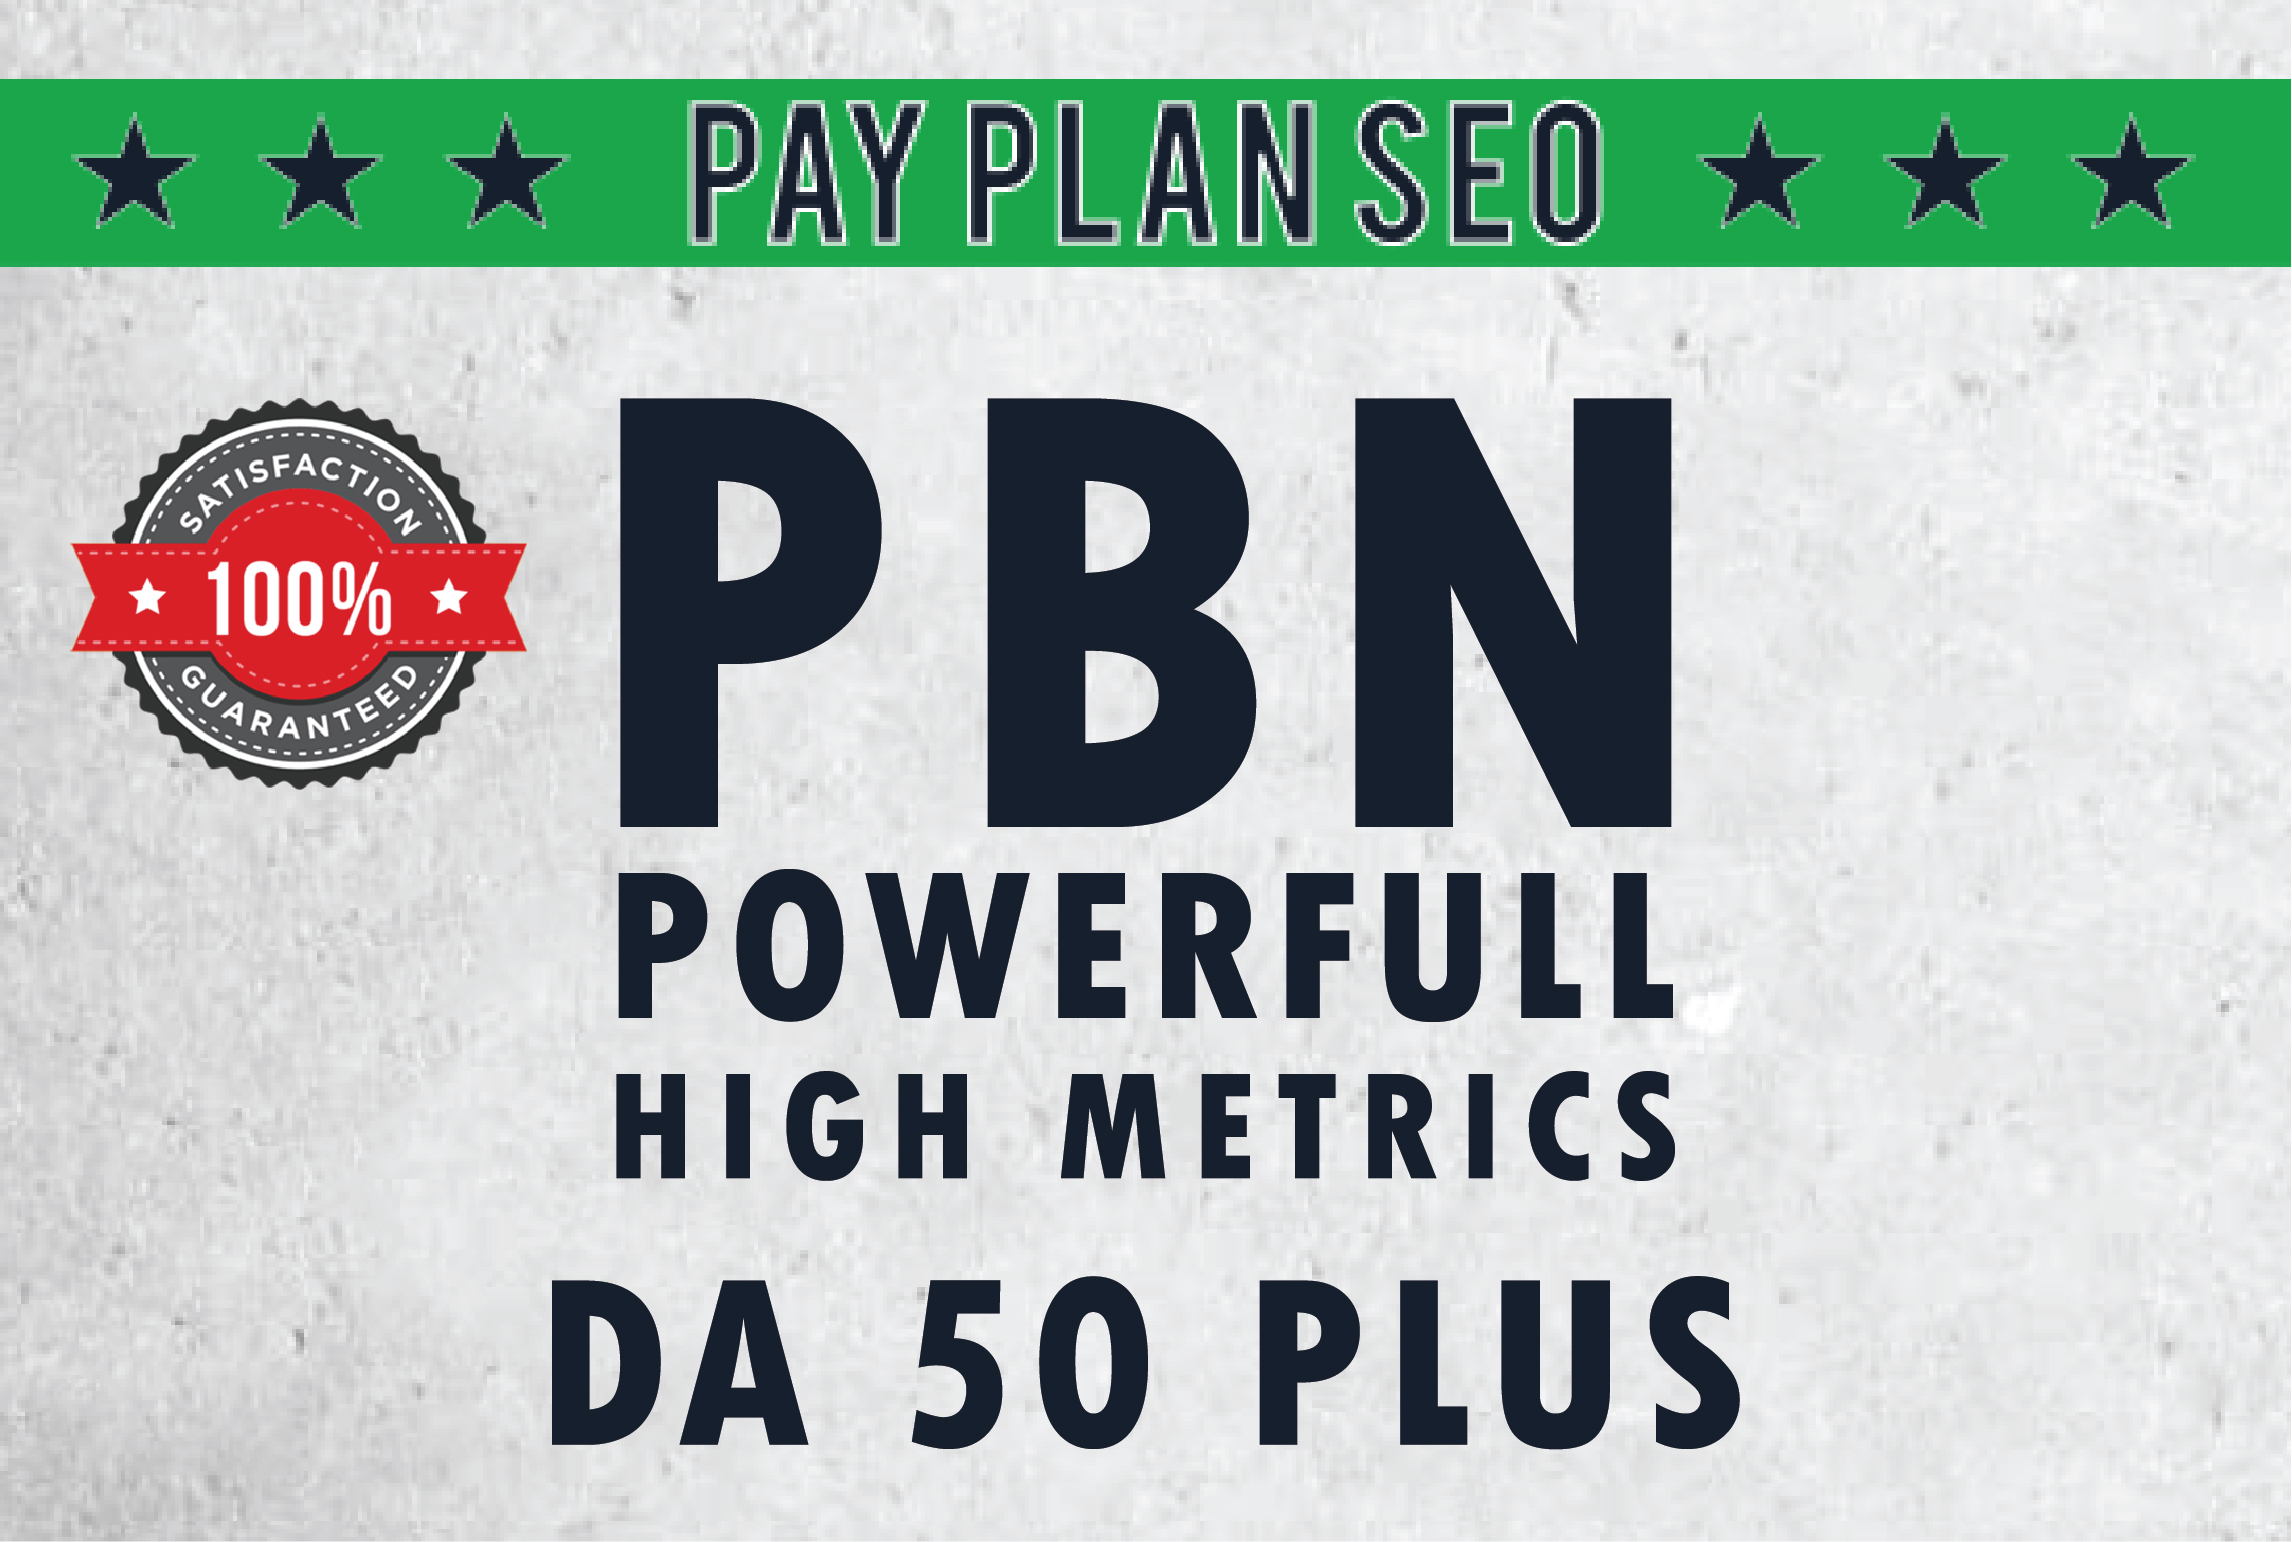 I Will Provide You 10 Powerfull High Authority PBNs Backlinks DA 50+ for 10